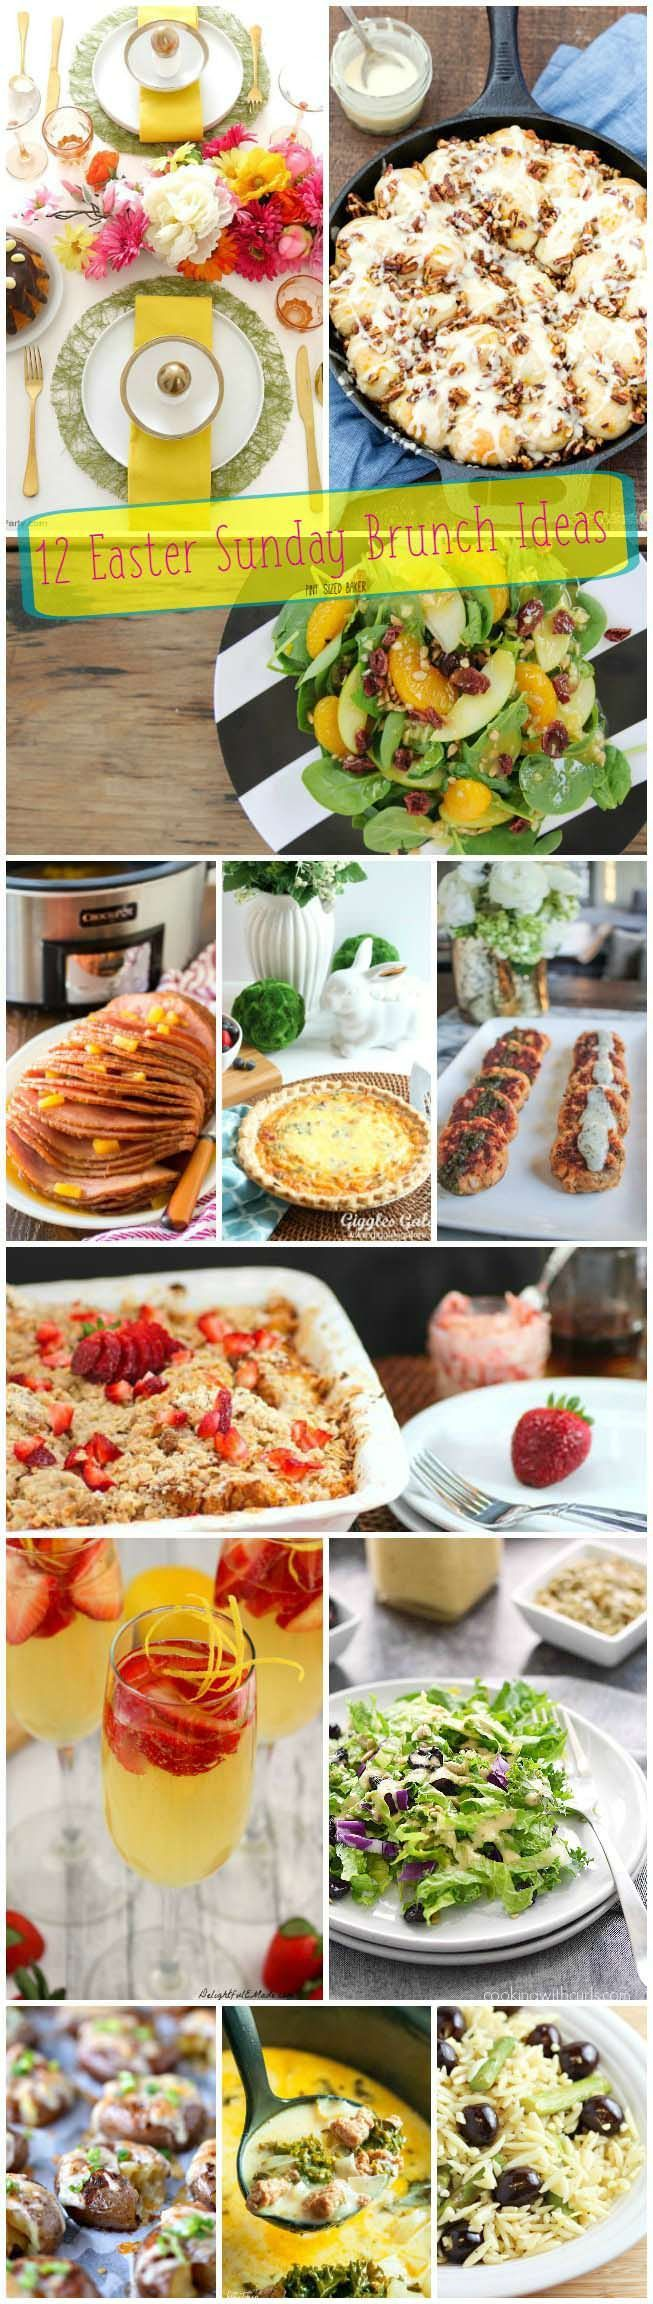 36 best easter images on pinterest easter food easter treats 12 great easter sunday brunch ideas perfect for your familys holiday gathering negle Gallery